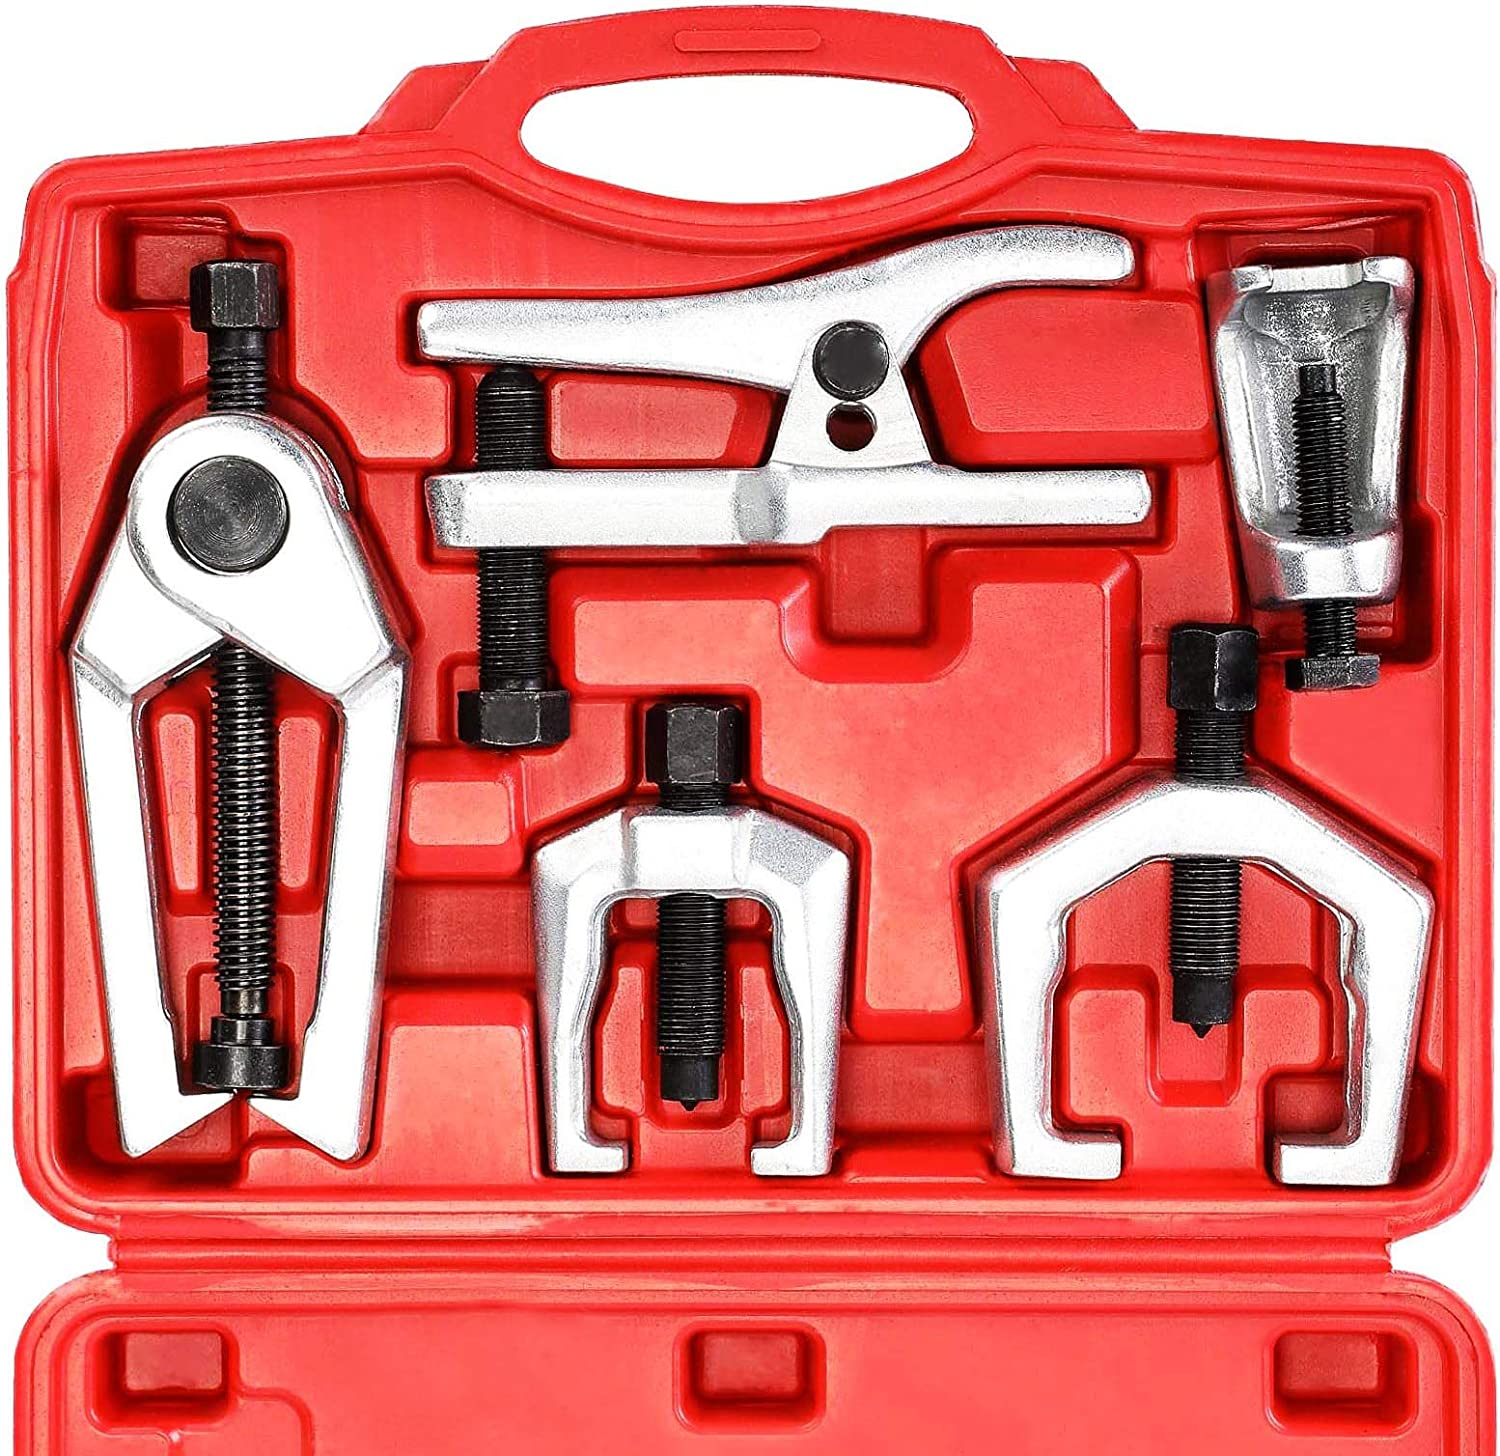 N A YSTOOL Front End Service Tool Set with Automotive Ball Joint Separator Tie Rod End Puller Pitman Arm Remover 5 PCS Removal Splitter Kit for Car SUV Light Truck Pickup